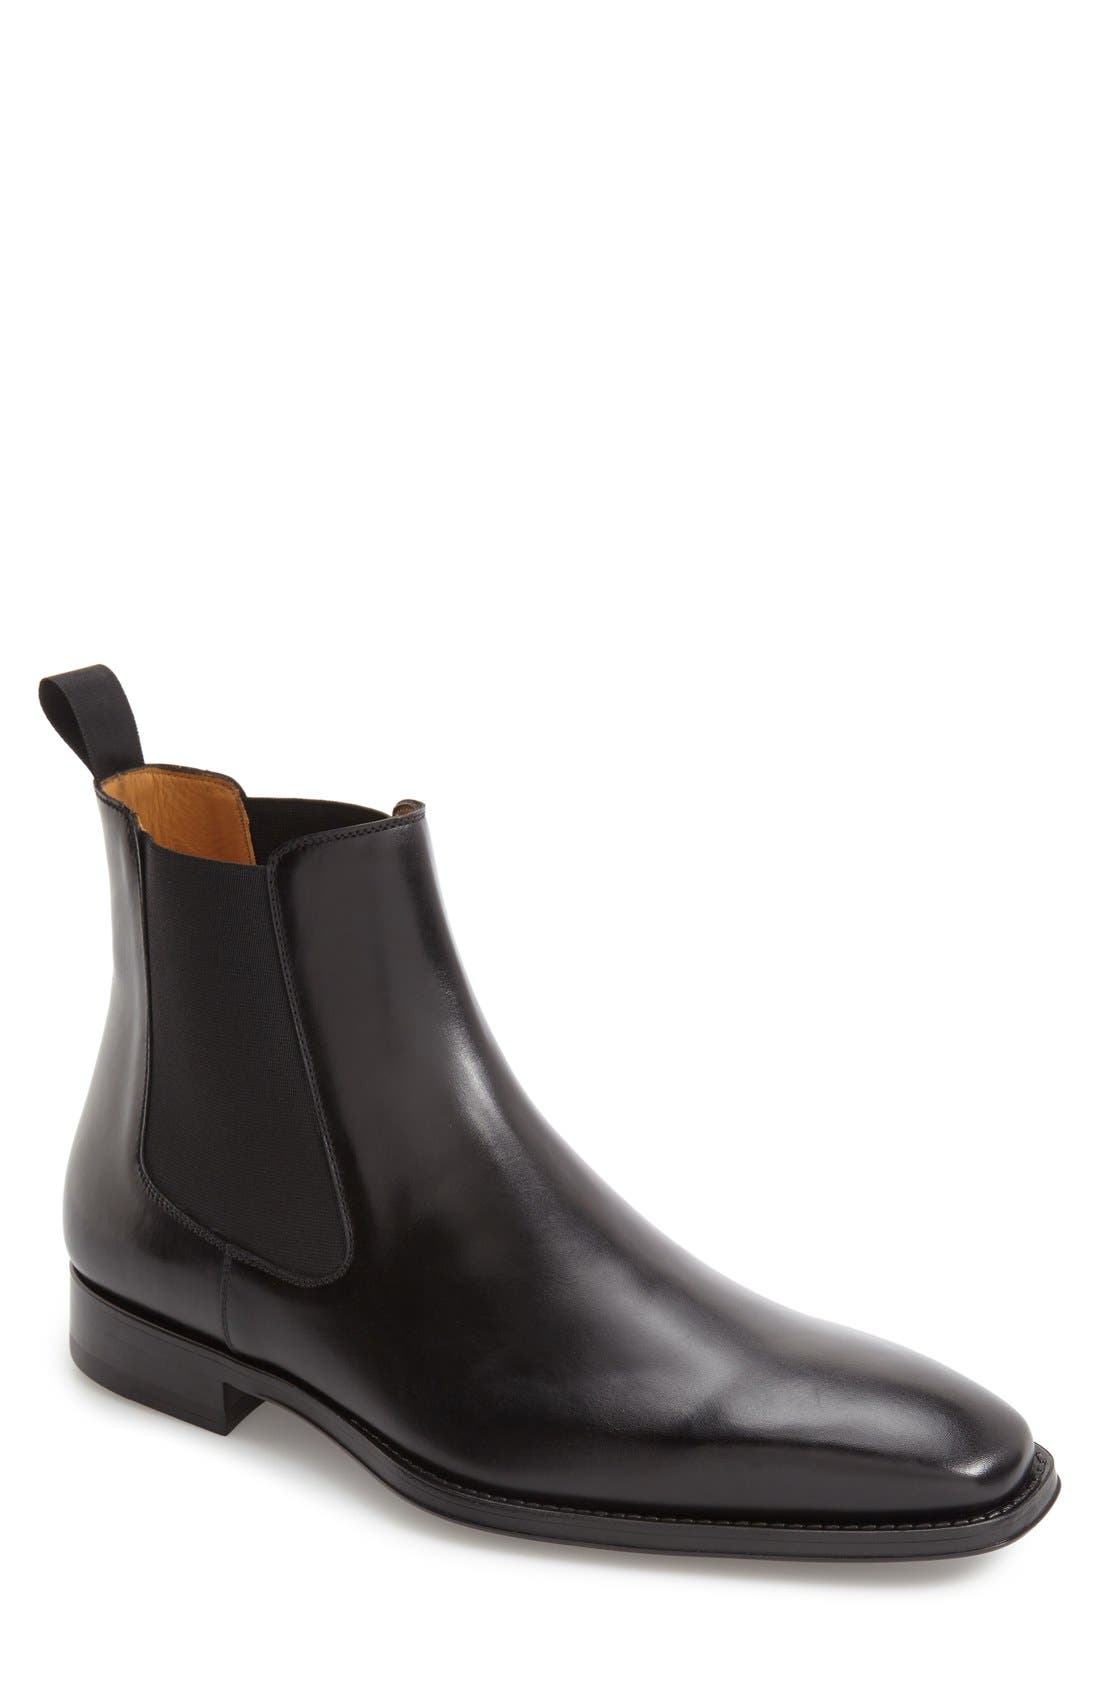 MAGNANNI, 'Sean' Chelsea Boot, Main thumbnail 1, color, BLACK